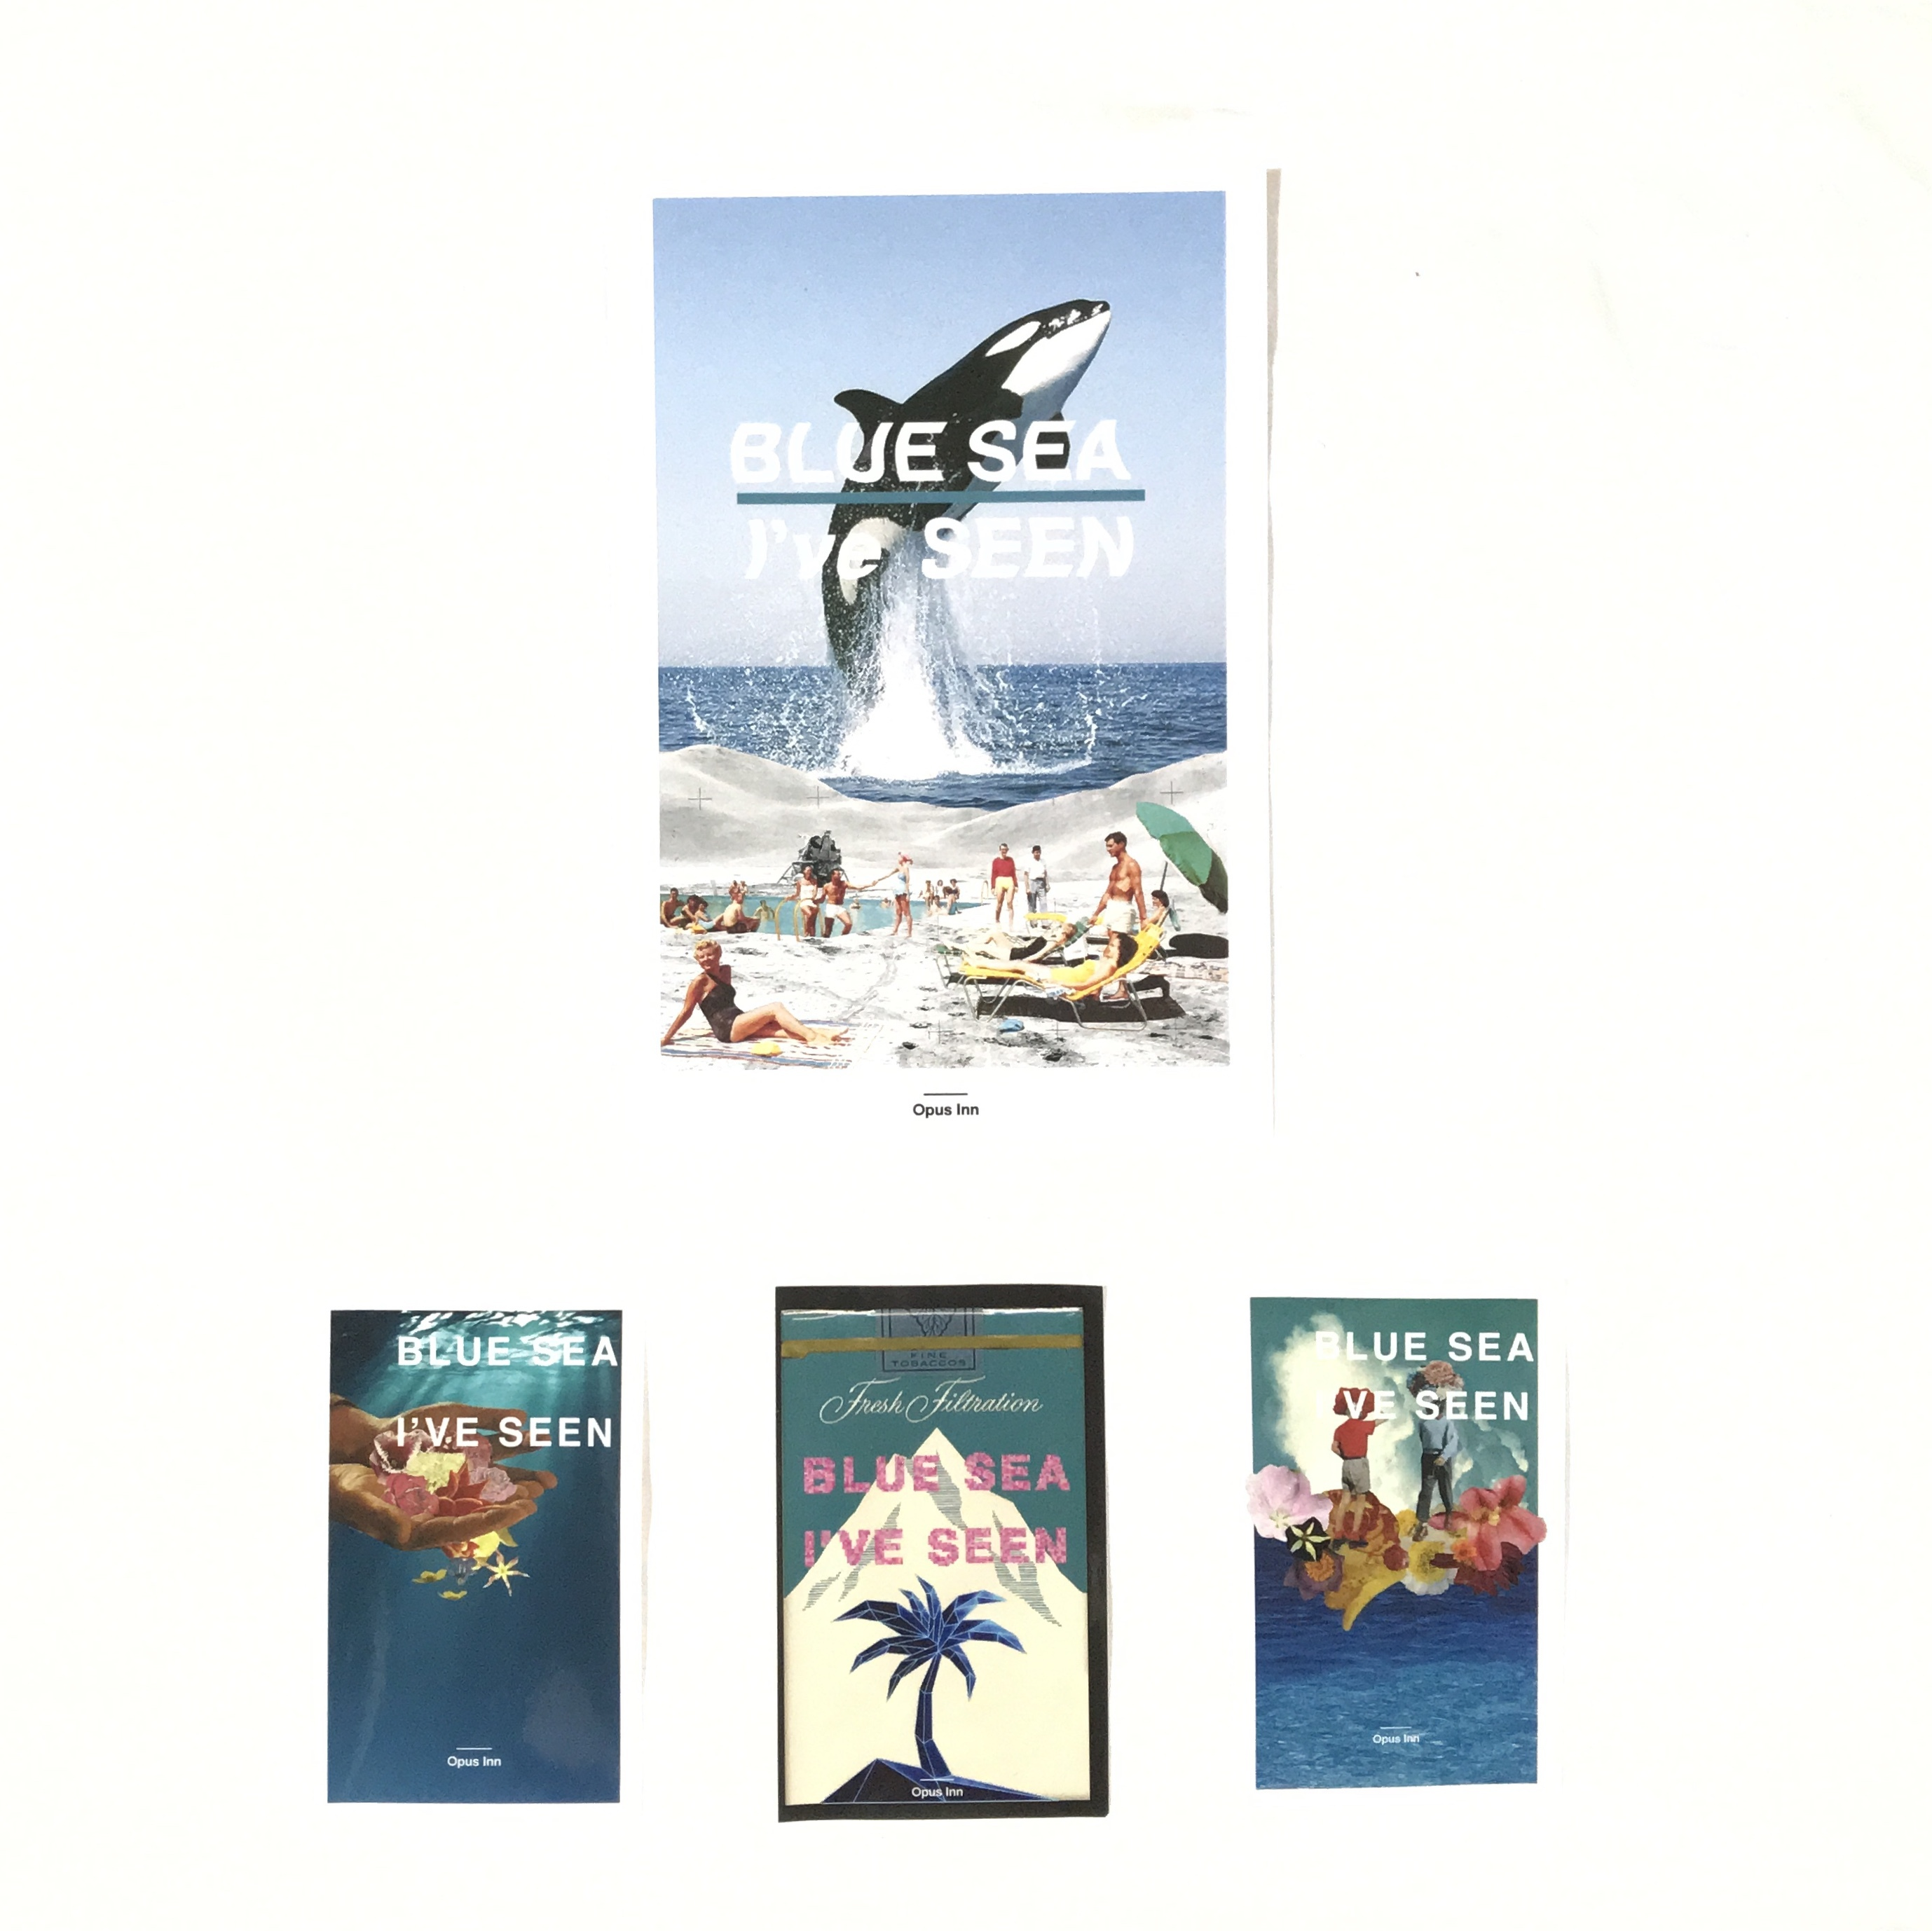 【Postcard +3 Stickers SET】''BLUE SEA I've SEEN'' [2 SET]